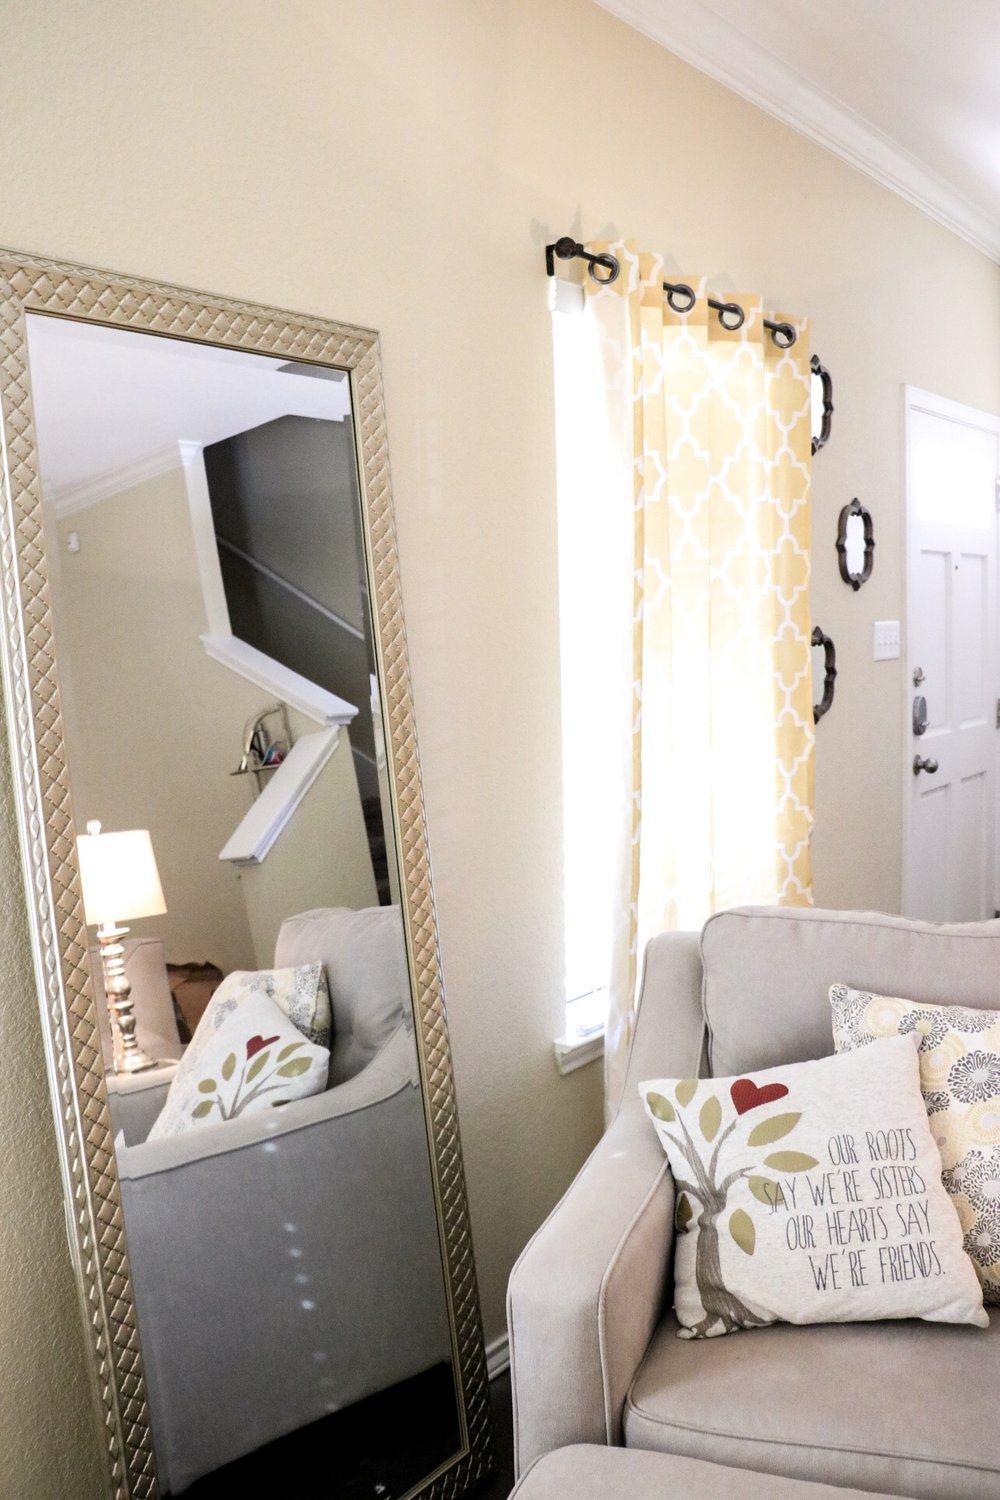 If you can't already tell by now, we love HomeGoods. We also got this wall mirror there too!  This one  is similar.